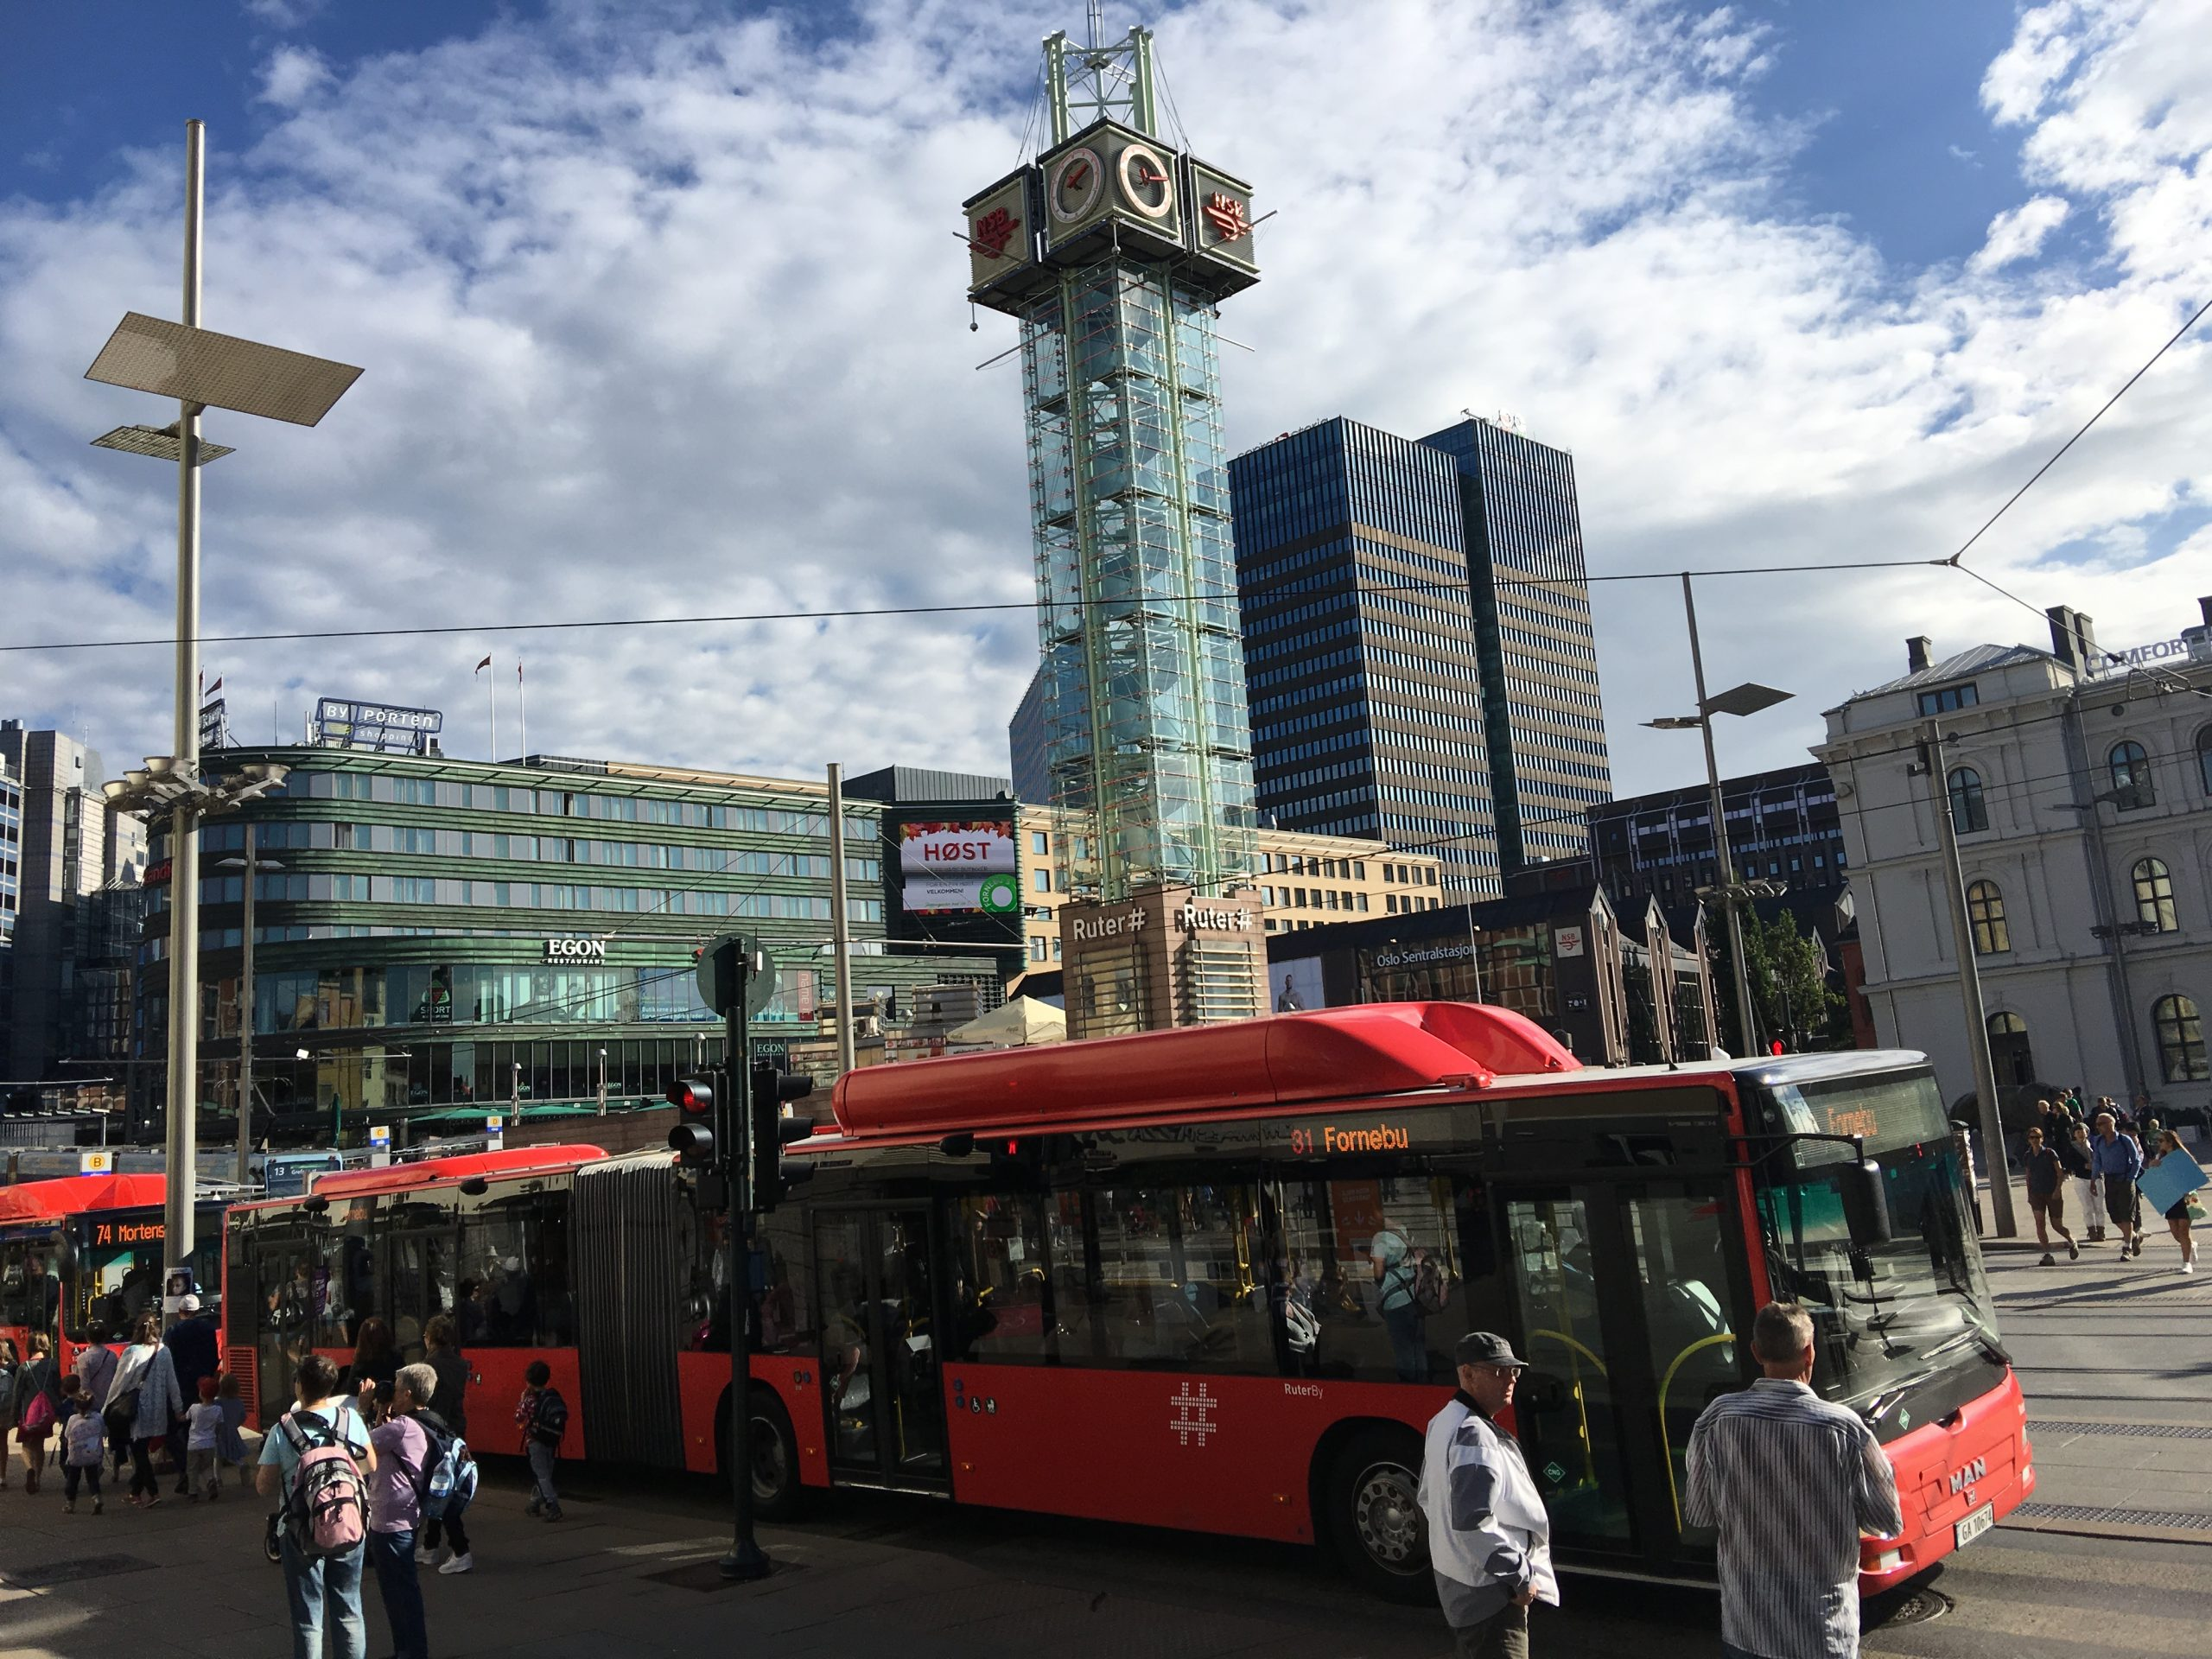 How Expensive Is the Stay and Food in Oslo?